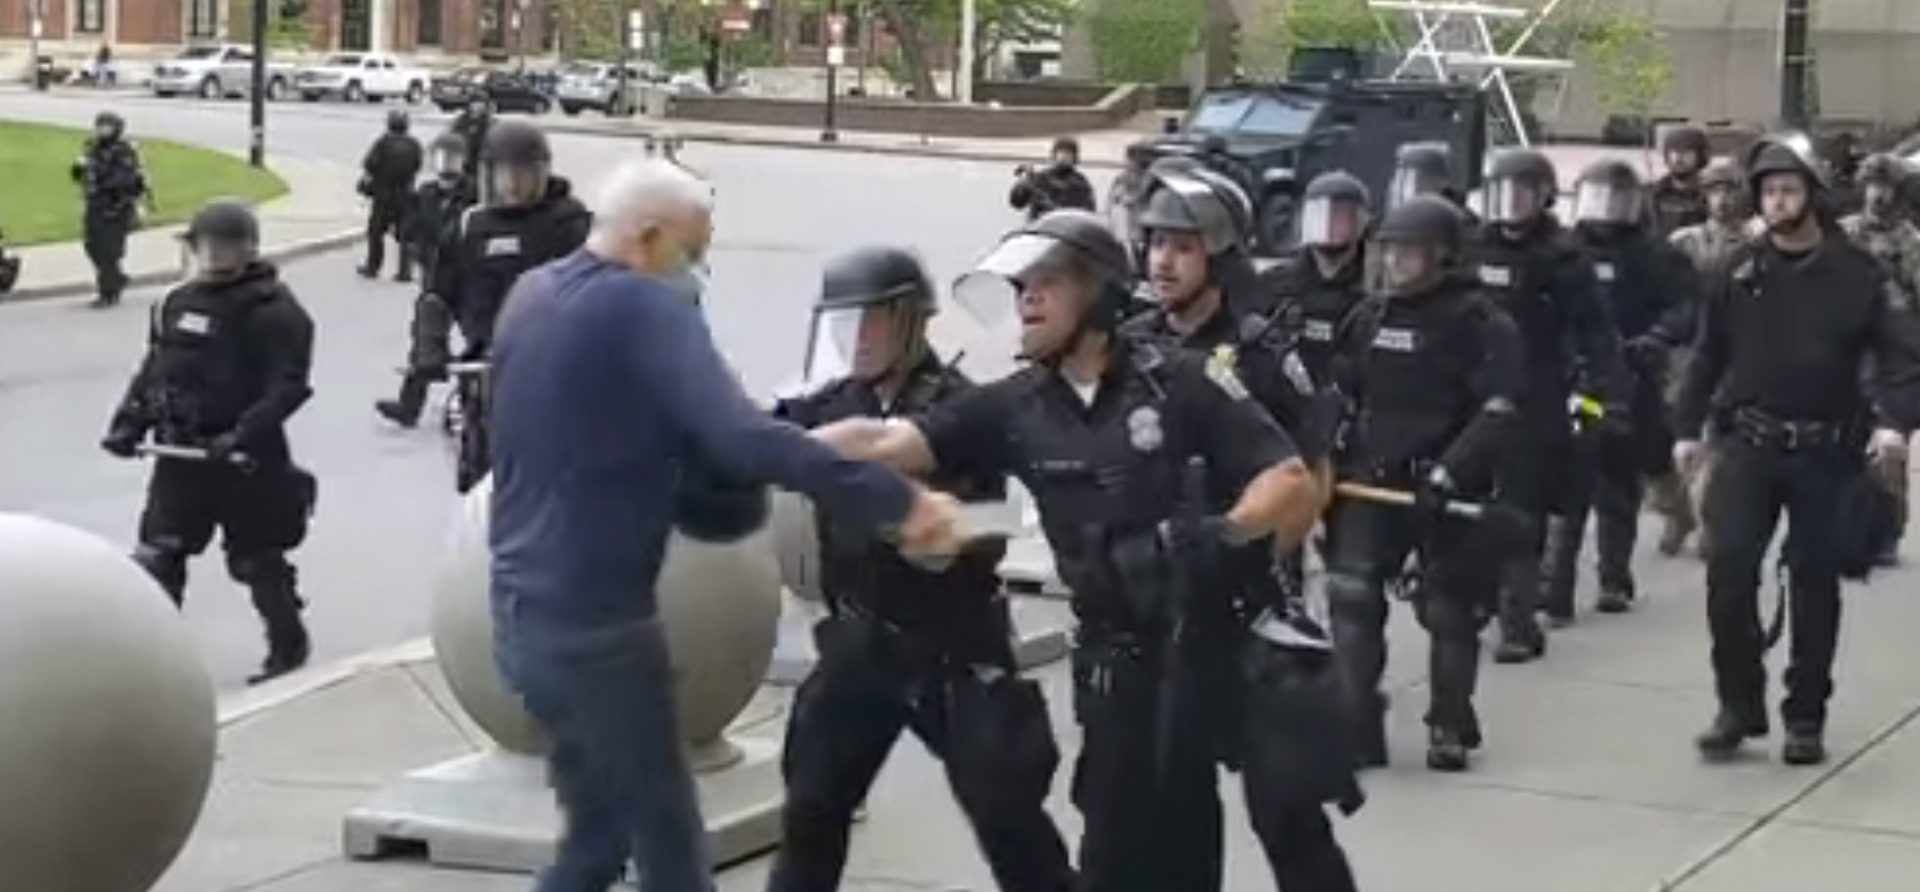 """In this image from video provided by WBFO, a Buffalo police officer appears to shove a man who walked up to police Thursday, June 4, 2020, in Buffalo, N.Y. Video from WBFO shows the man appearing to hit his head on the pavement, with blood leaking out as officers walk past to clear Niagara Square. Buffalo police initially said in a statement that a person """"was injured when he tripped & fell,"""" WIVB-TV reported, but Capt. Jeff Rinaldo later told the TV station that an internal affairs investigation was opened."""